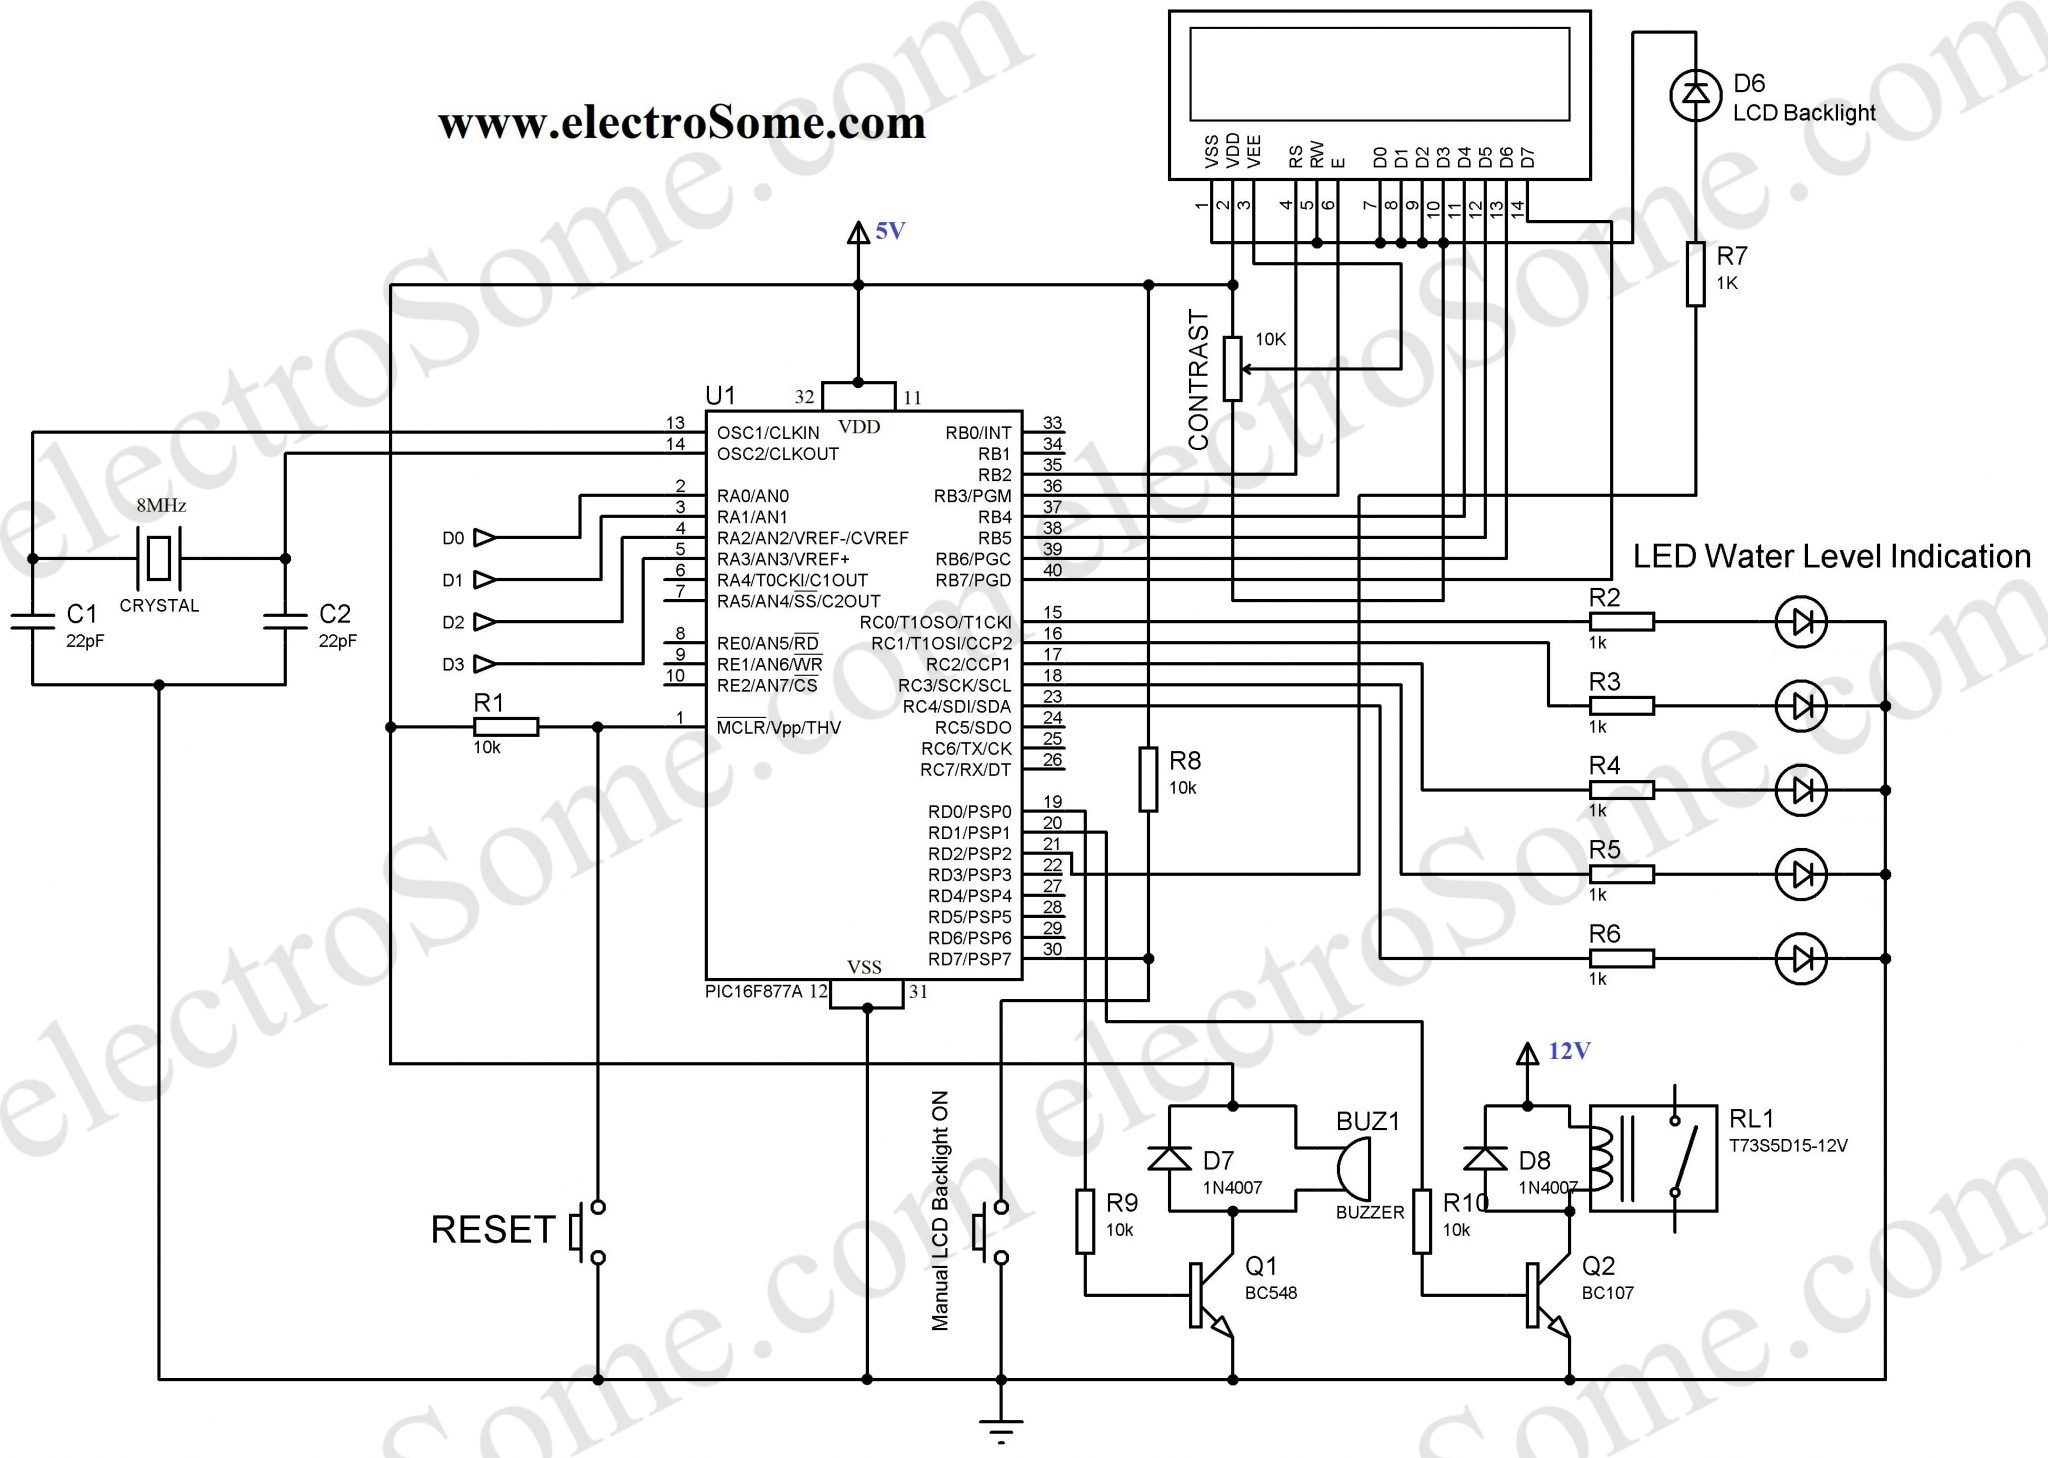 Subaru O2 Sensor Wiring Diagram in addition P 0900c152800a7698 in addition 2003 Chevrolet Impala Underhood Under Fuse Box Diagram additionally Peugeot 206 Cc Fuse Box Diagram also Bohr Model Of Silicon Atom. on oxygen alarm circuit diagram